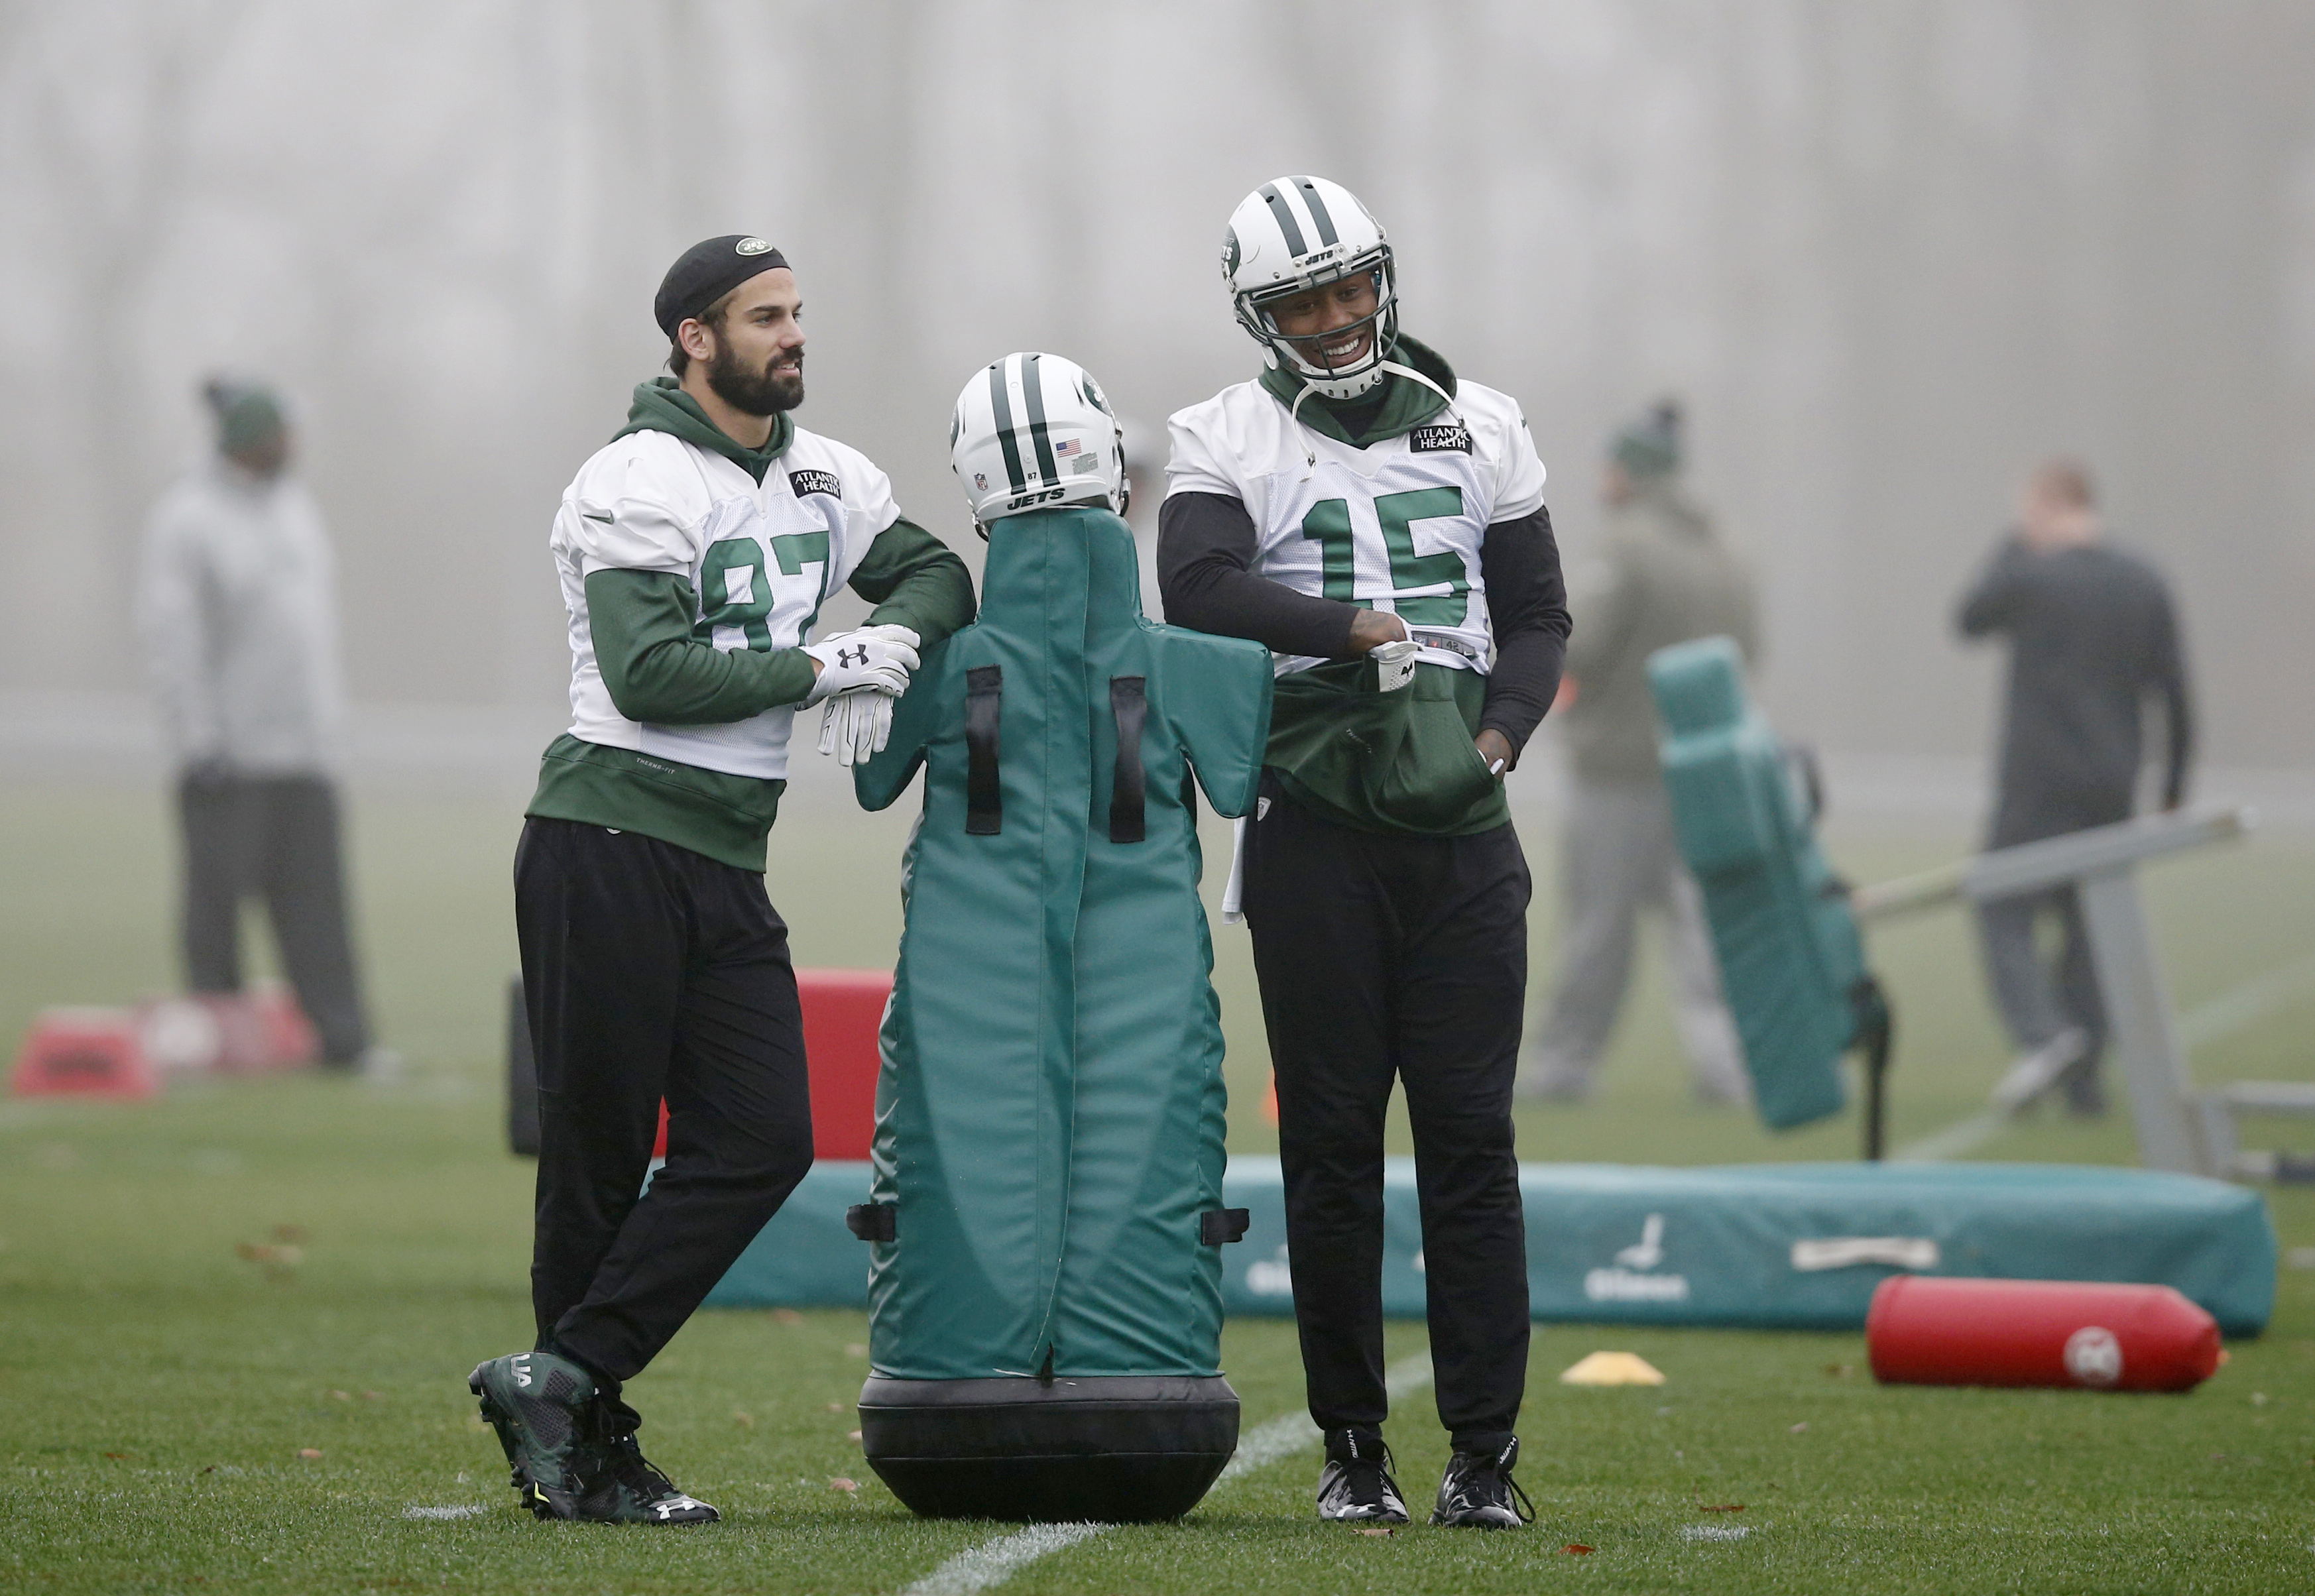 New York Jets wide receivers Eric Decker (87) and Brandon Marshall (15) lean on blocking dummy before NFL football practice, Wednesday, Dec. 30, 2015, in Florham Park, N.J.   The Jets are preparing for Sunday's game against the Buffalo Bills and former co